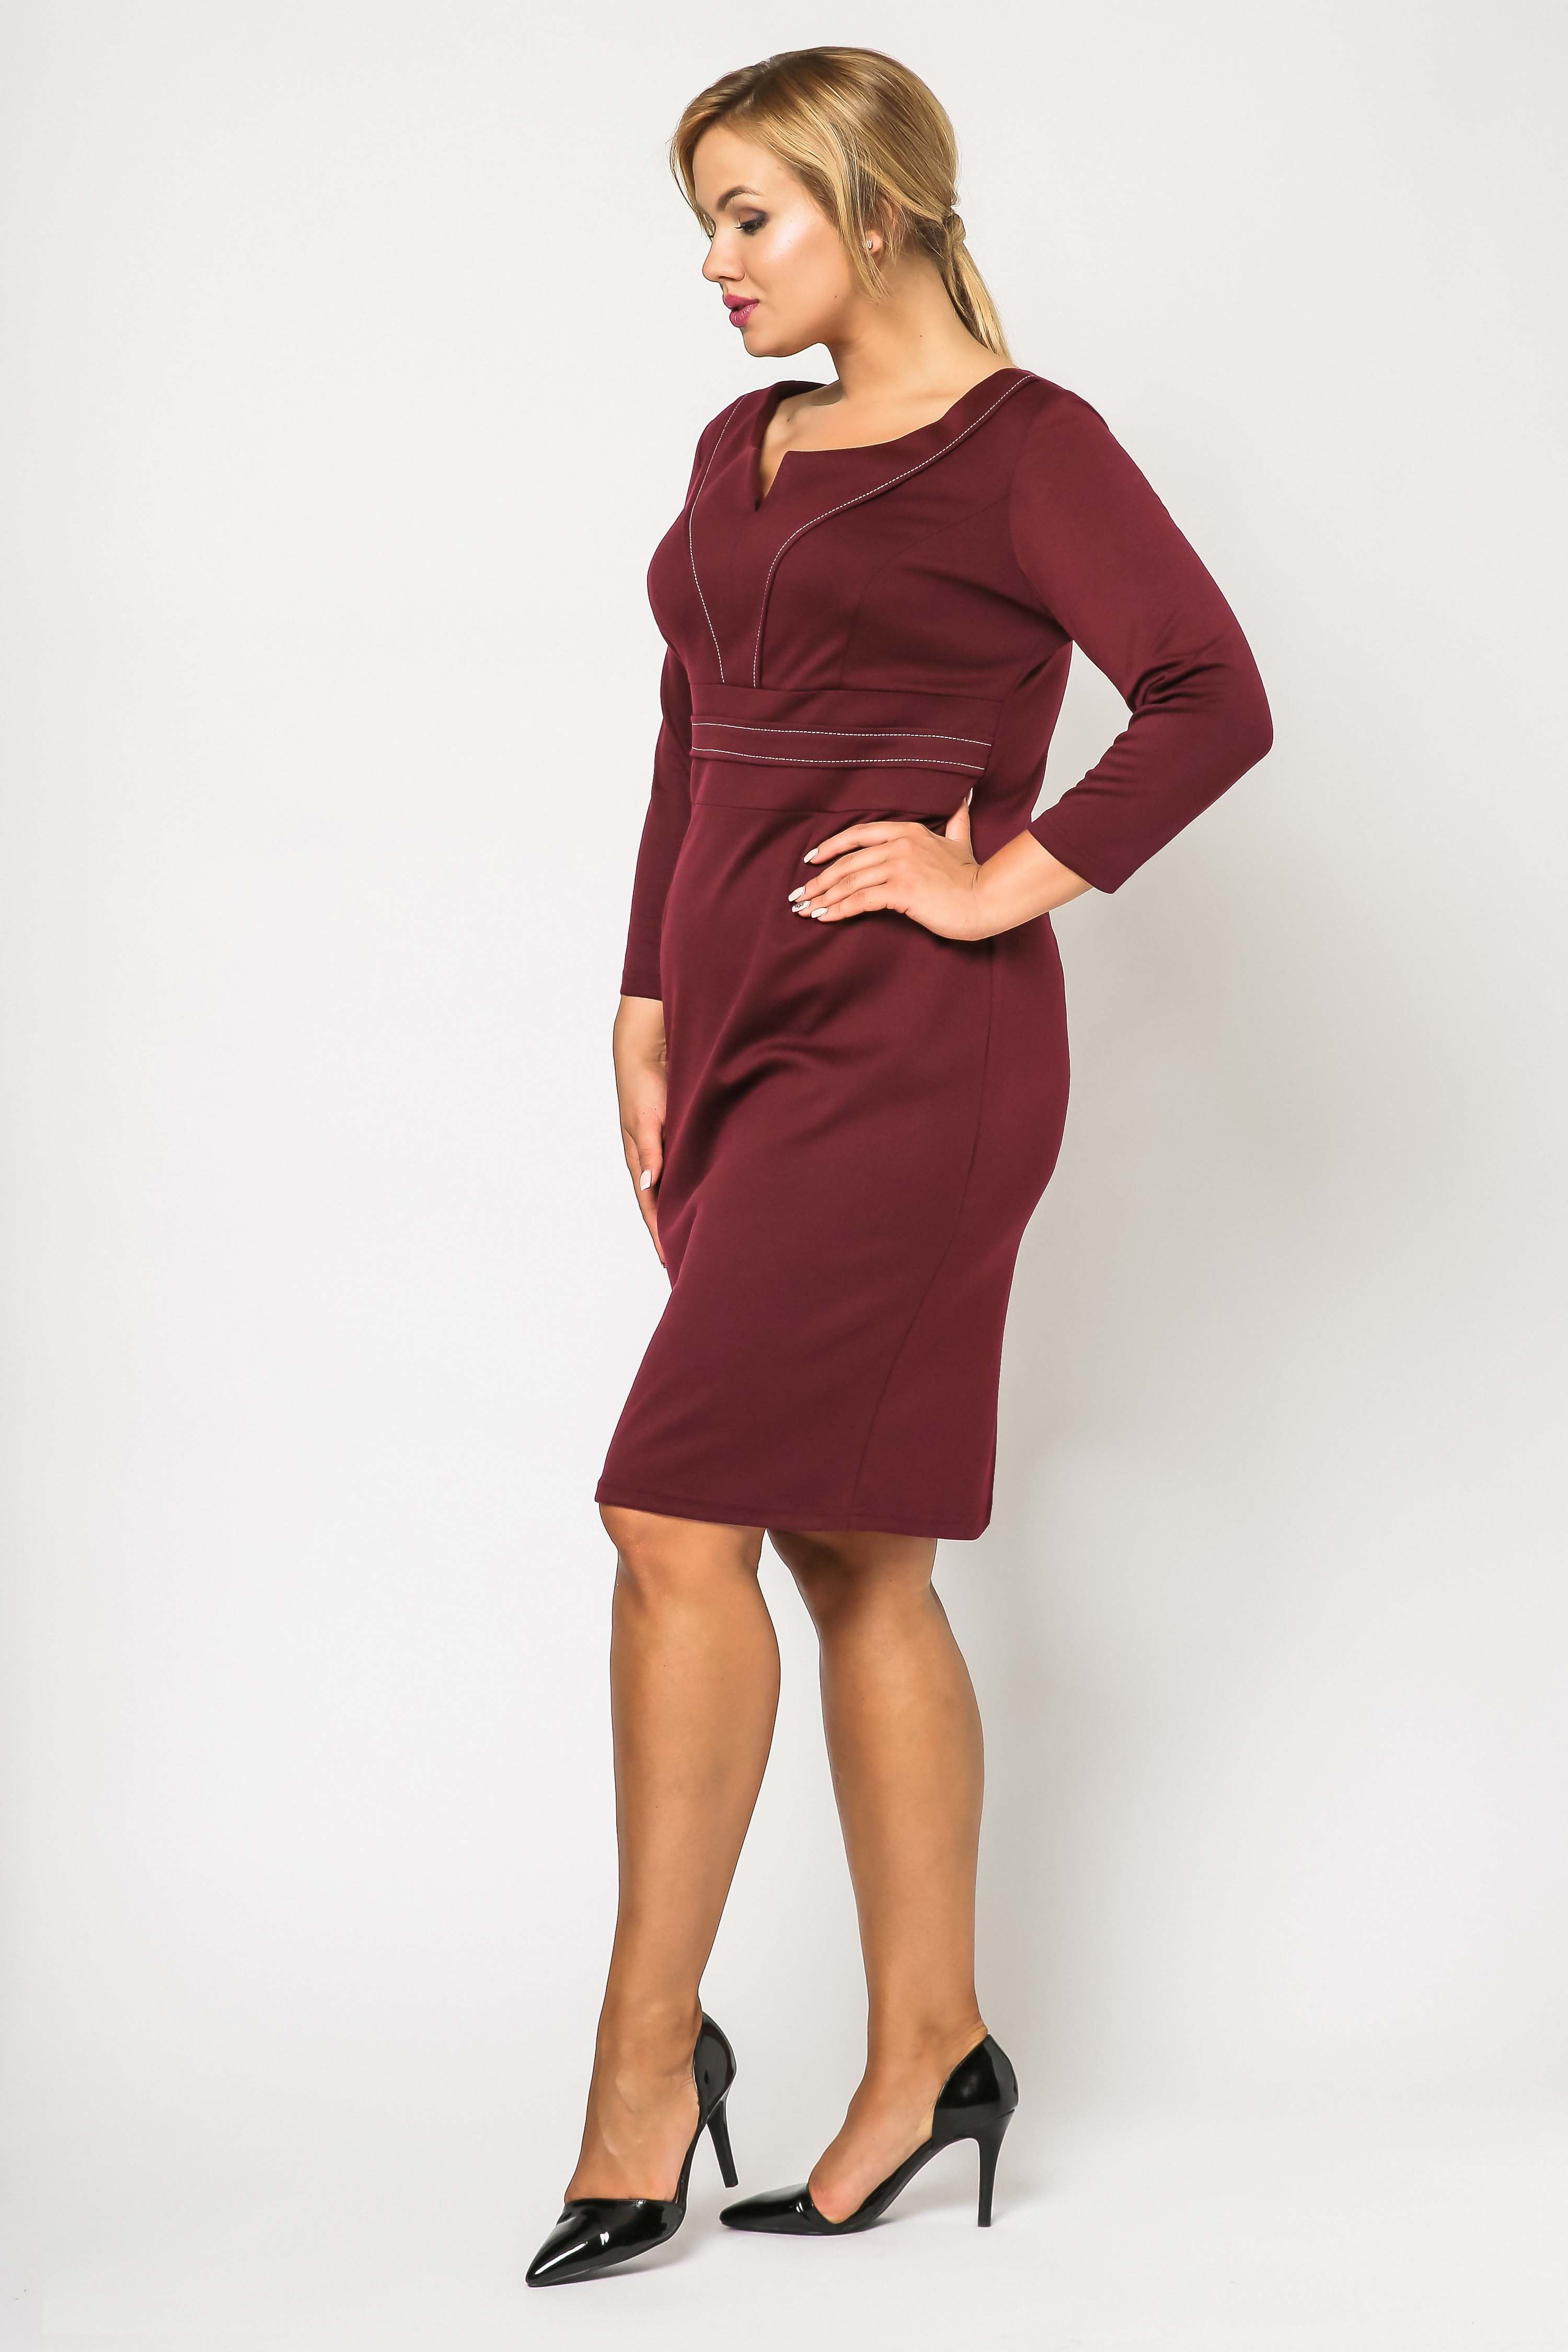 Tamara Knitwear dress, burgundy